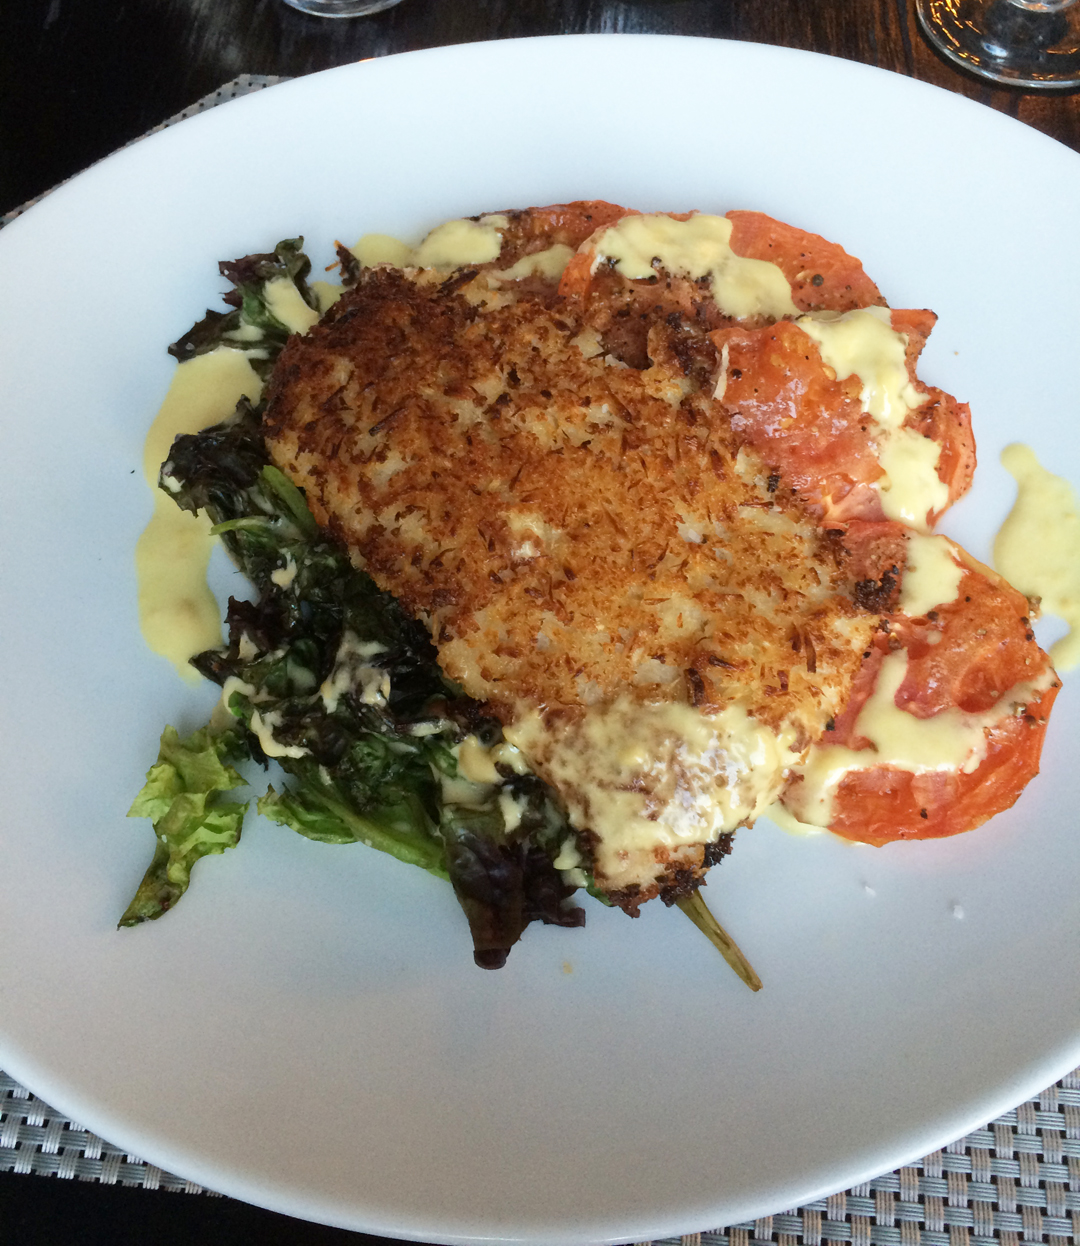 Recipes, Recaps, And Restaurant Reviews: The French Kitchen At The Lord Baltimore Hotel